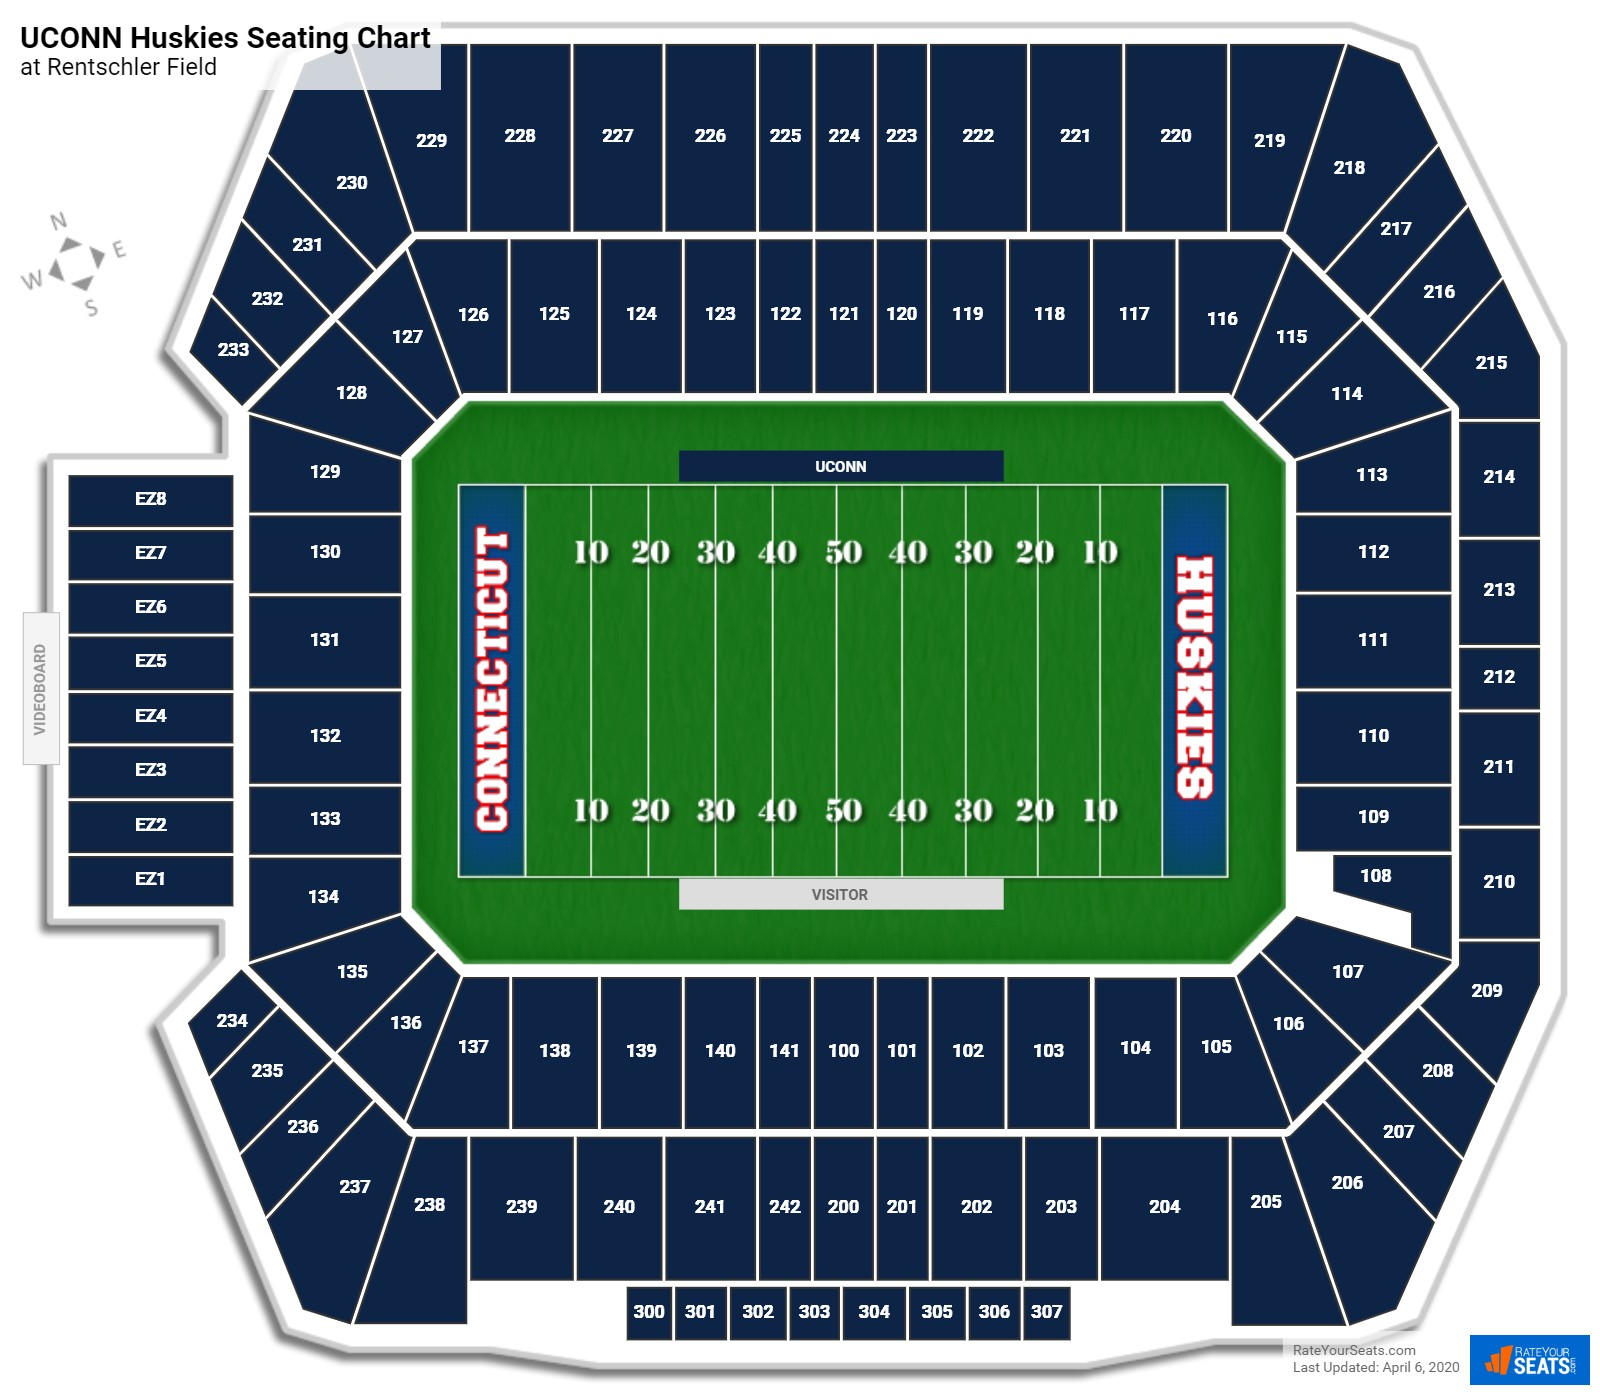 UCONN Football Seating Chart